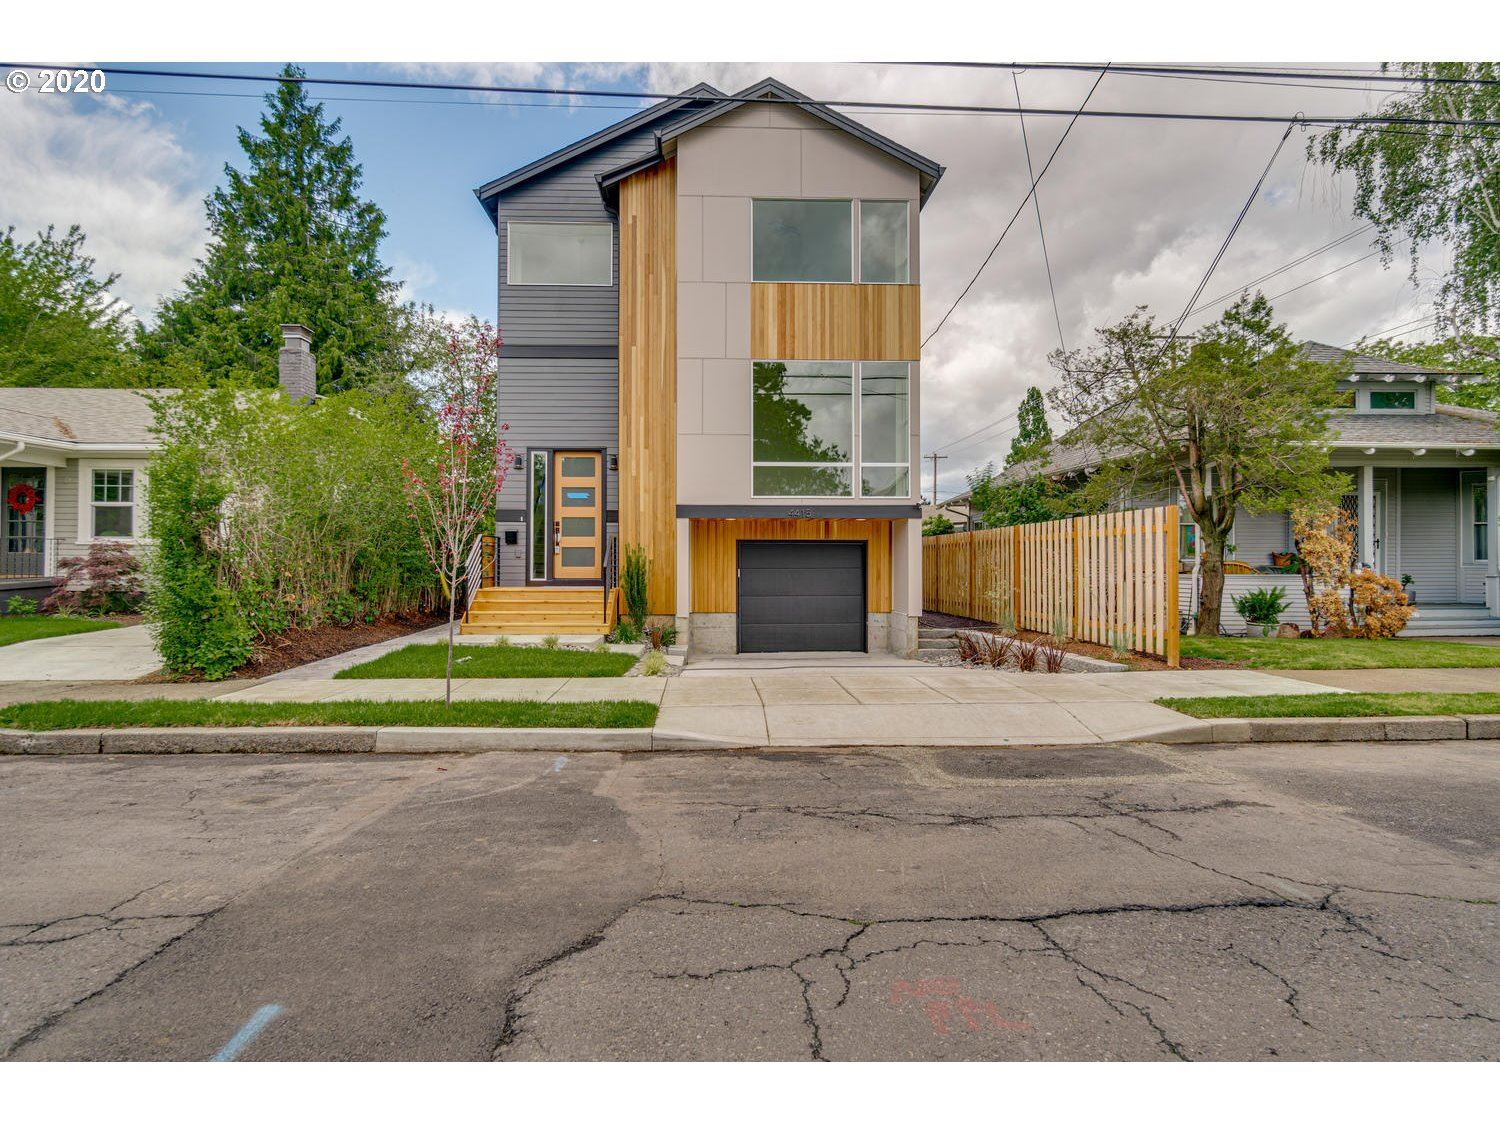 3148 SE TIBBETTS ST, Portland, OR 97202 - MLS#: 20291790